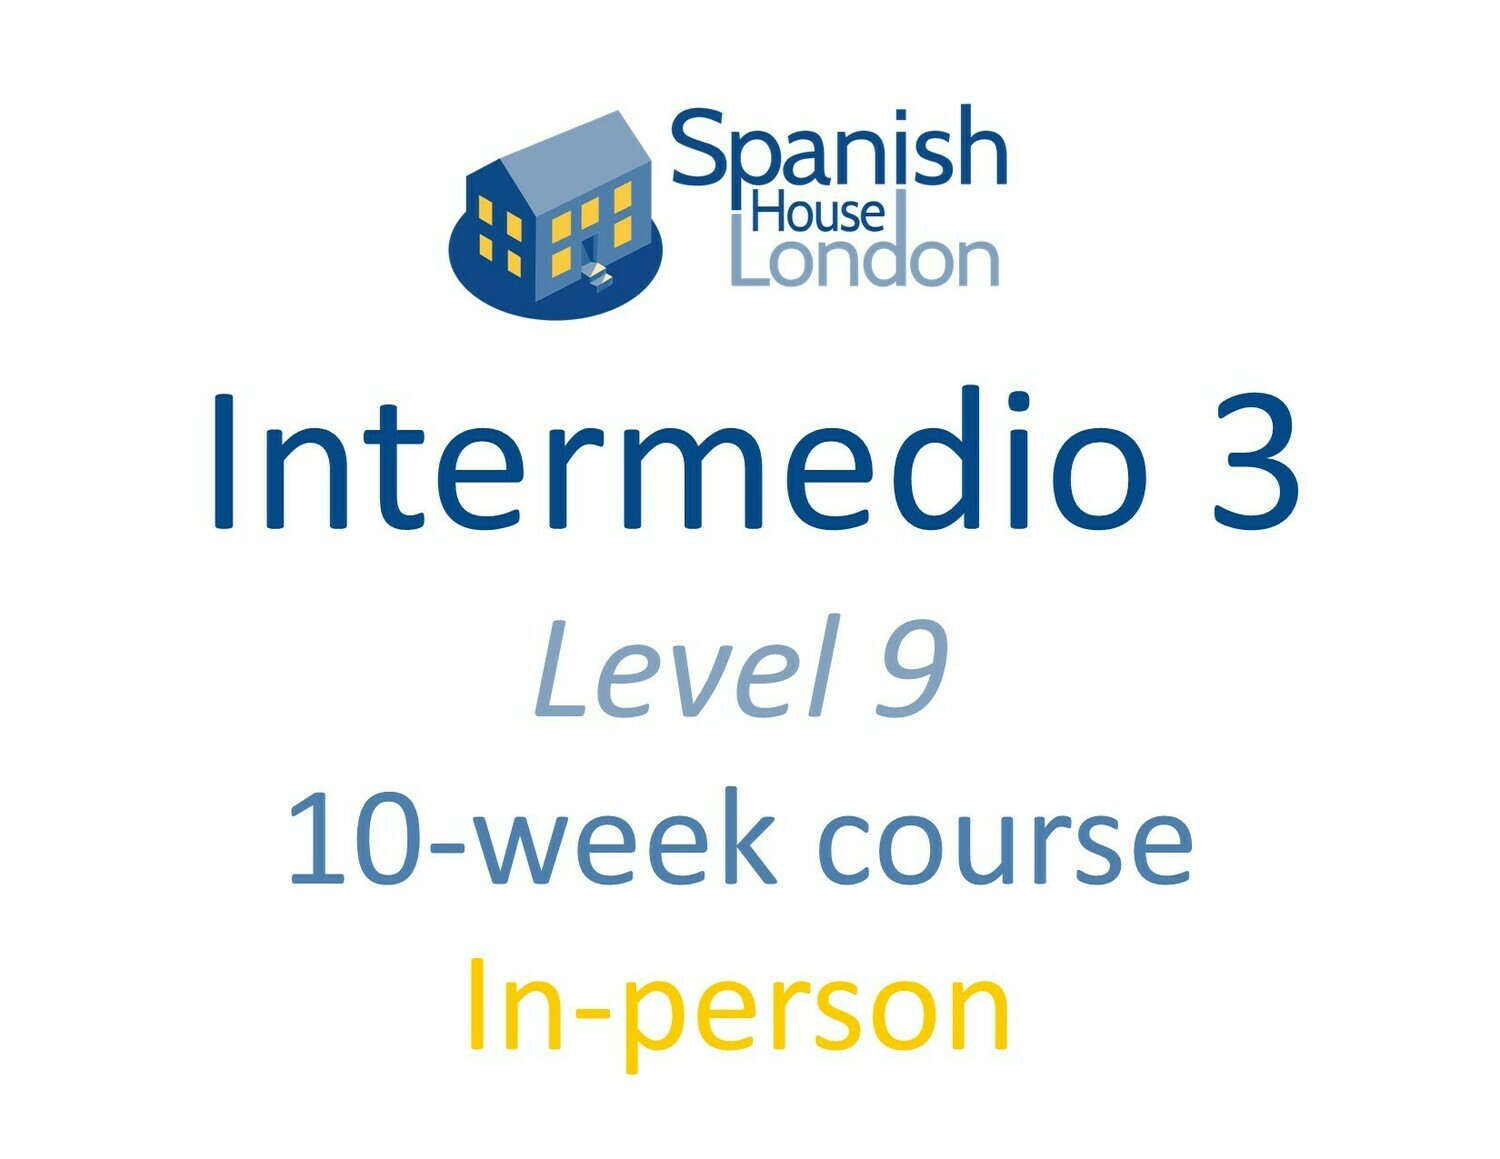 Intermedio 3 Course starting on 20th September at 7.30pm in Euston / King's Cross